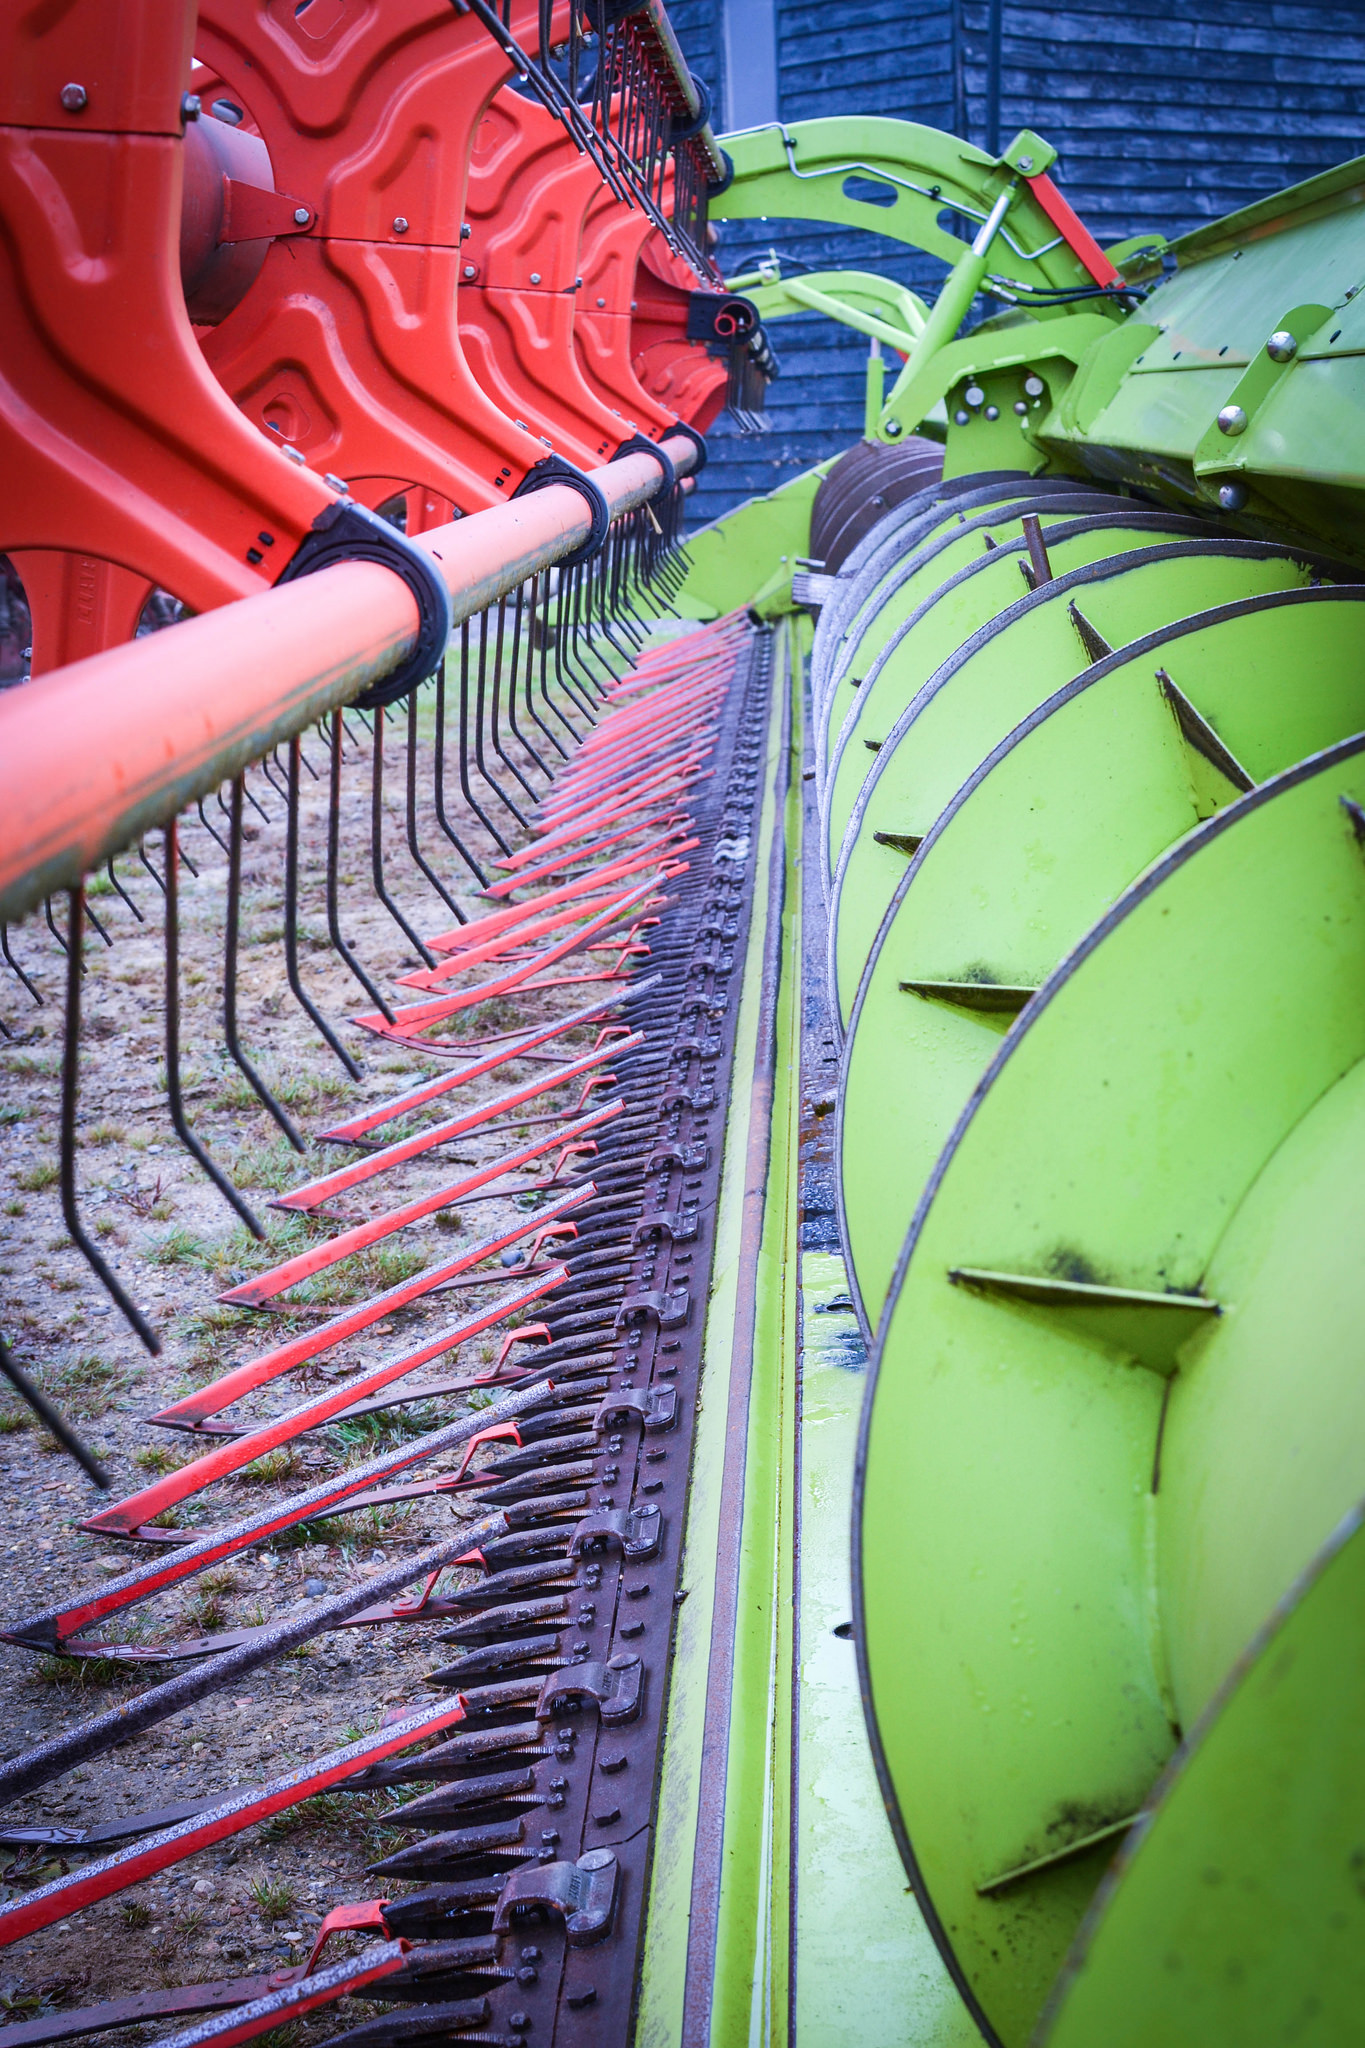 Front of combine harvester at Hillfarm Oils